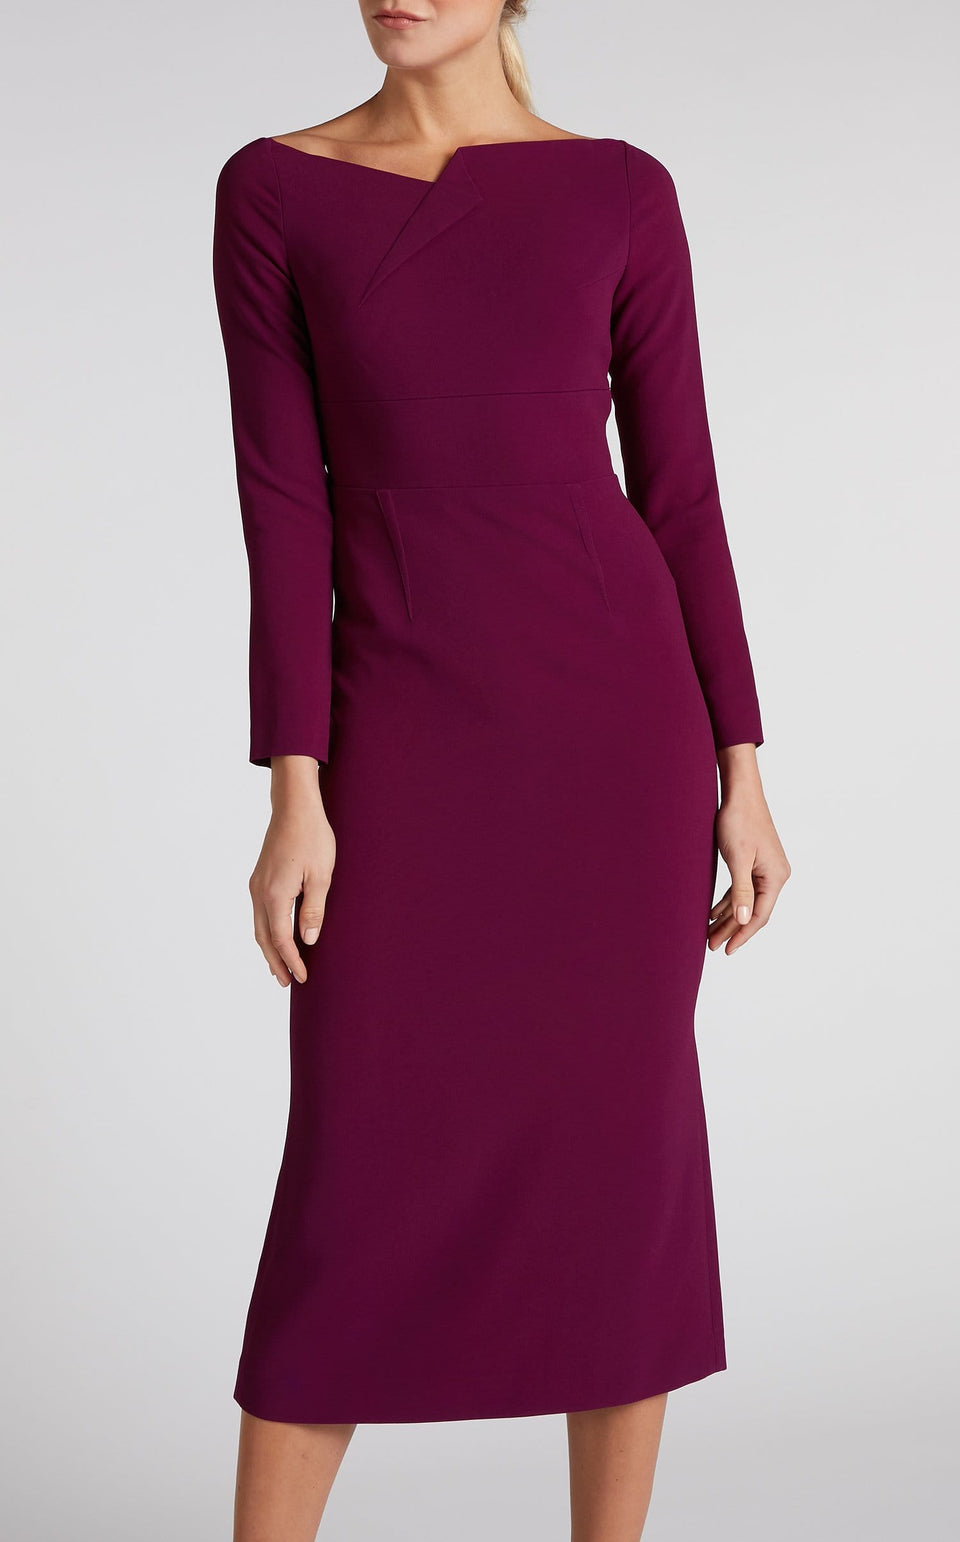 Romolo Dress